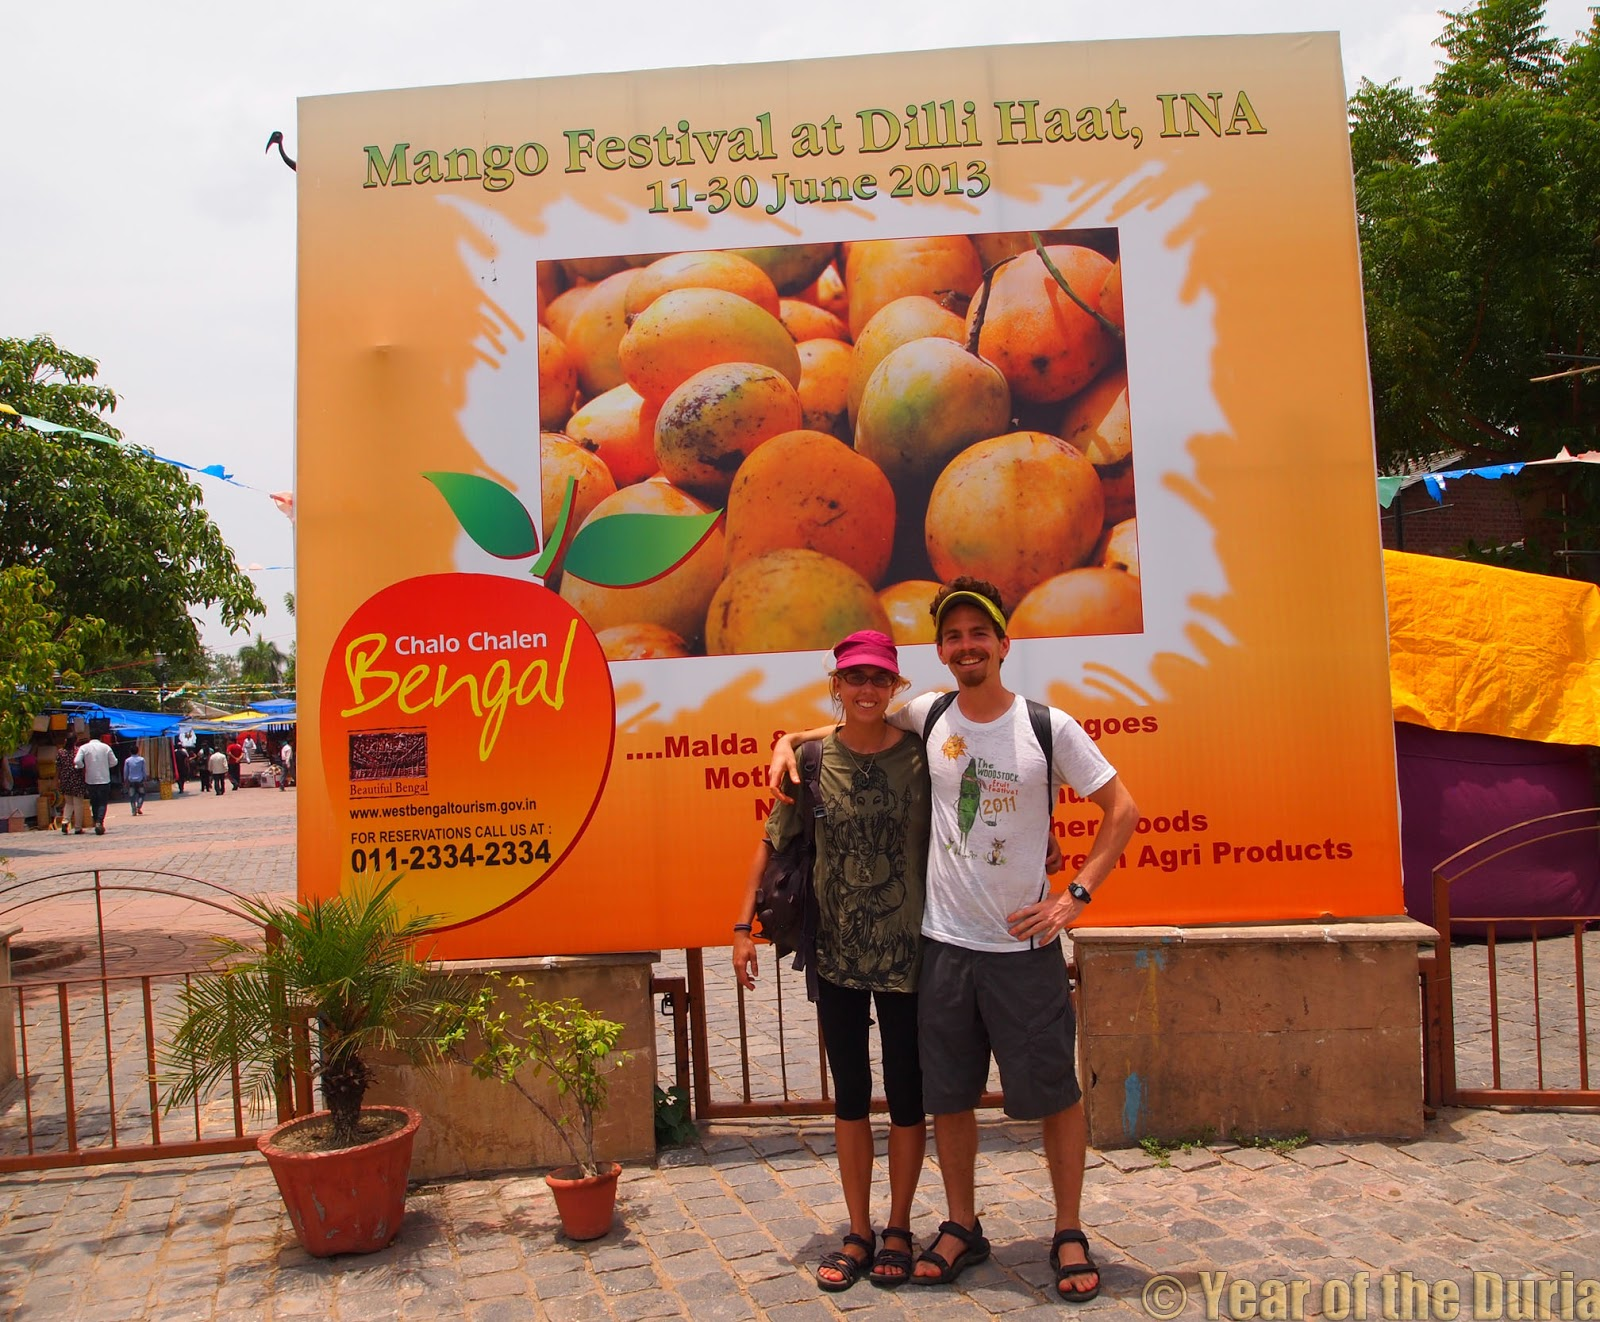 international mango festival photo essay new delhi i was starting to wonder if this mango festival was going to be as disappointing as some of the durian festivals we d ed when a man pointed us inside